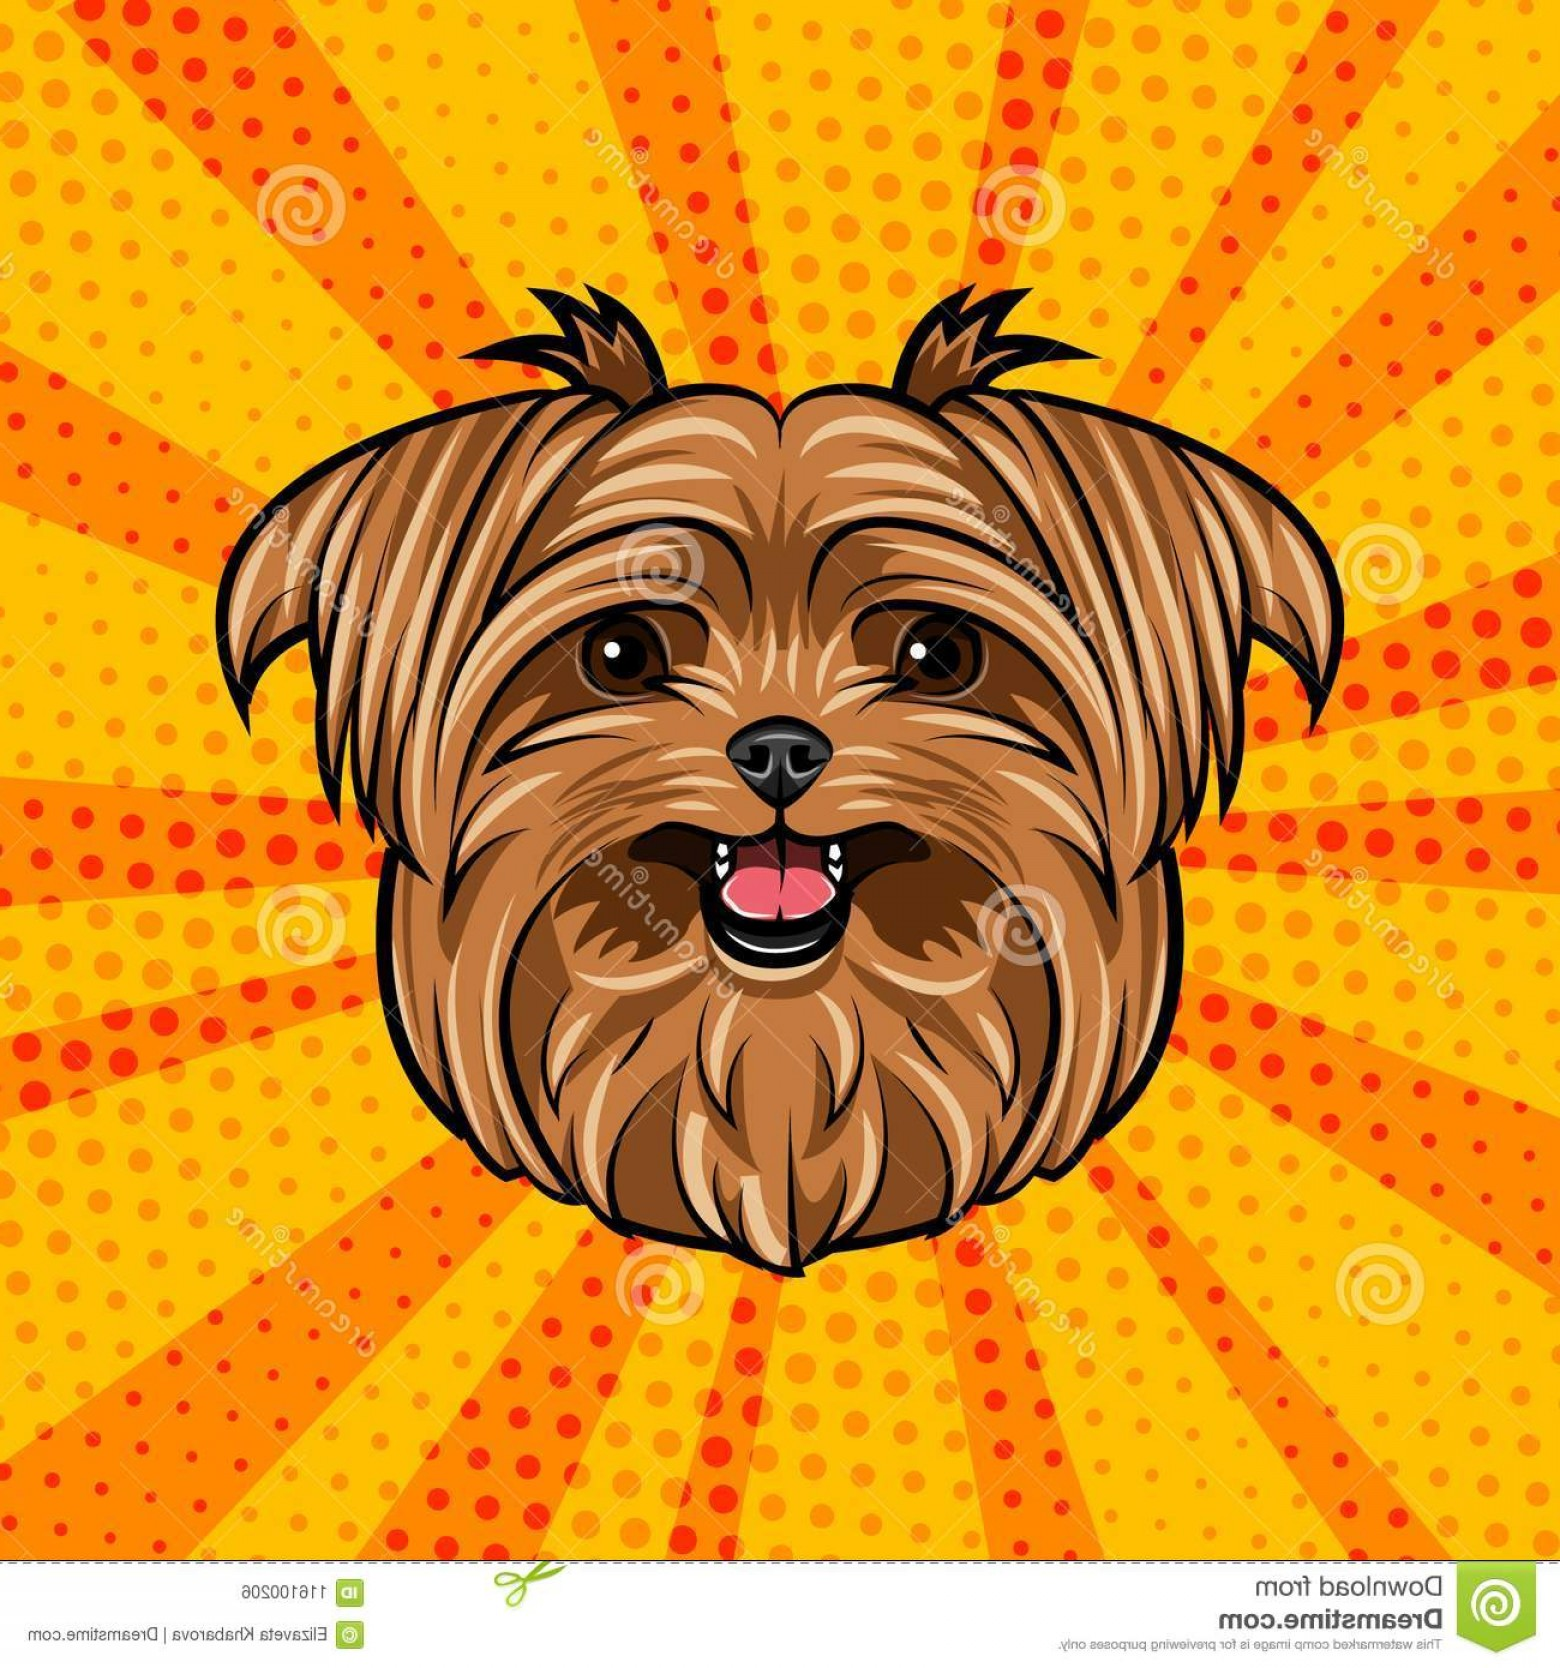 Cute Yorkie Dog Vector: Yorkshire Terrier Dog Head Cute Domestic Portrait Dogs Face Muzzle Colorful Background Vector Illustration Image